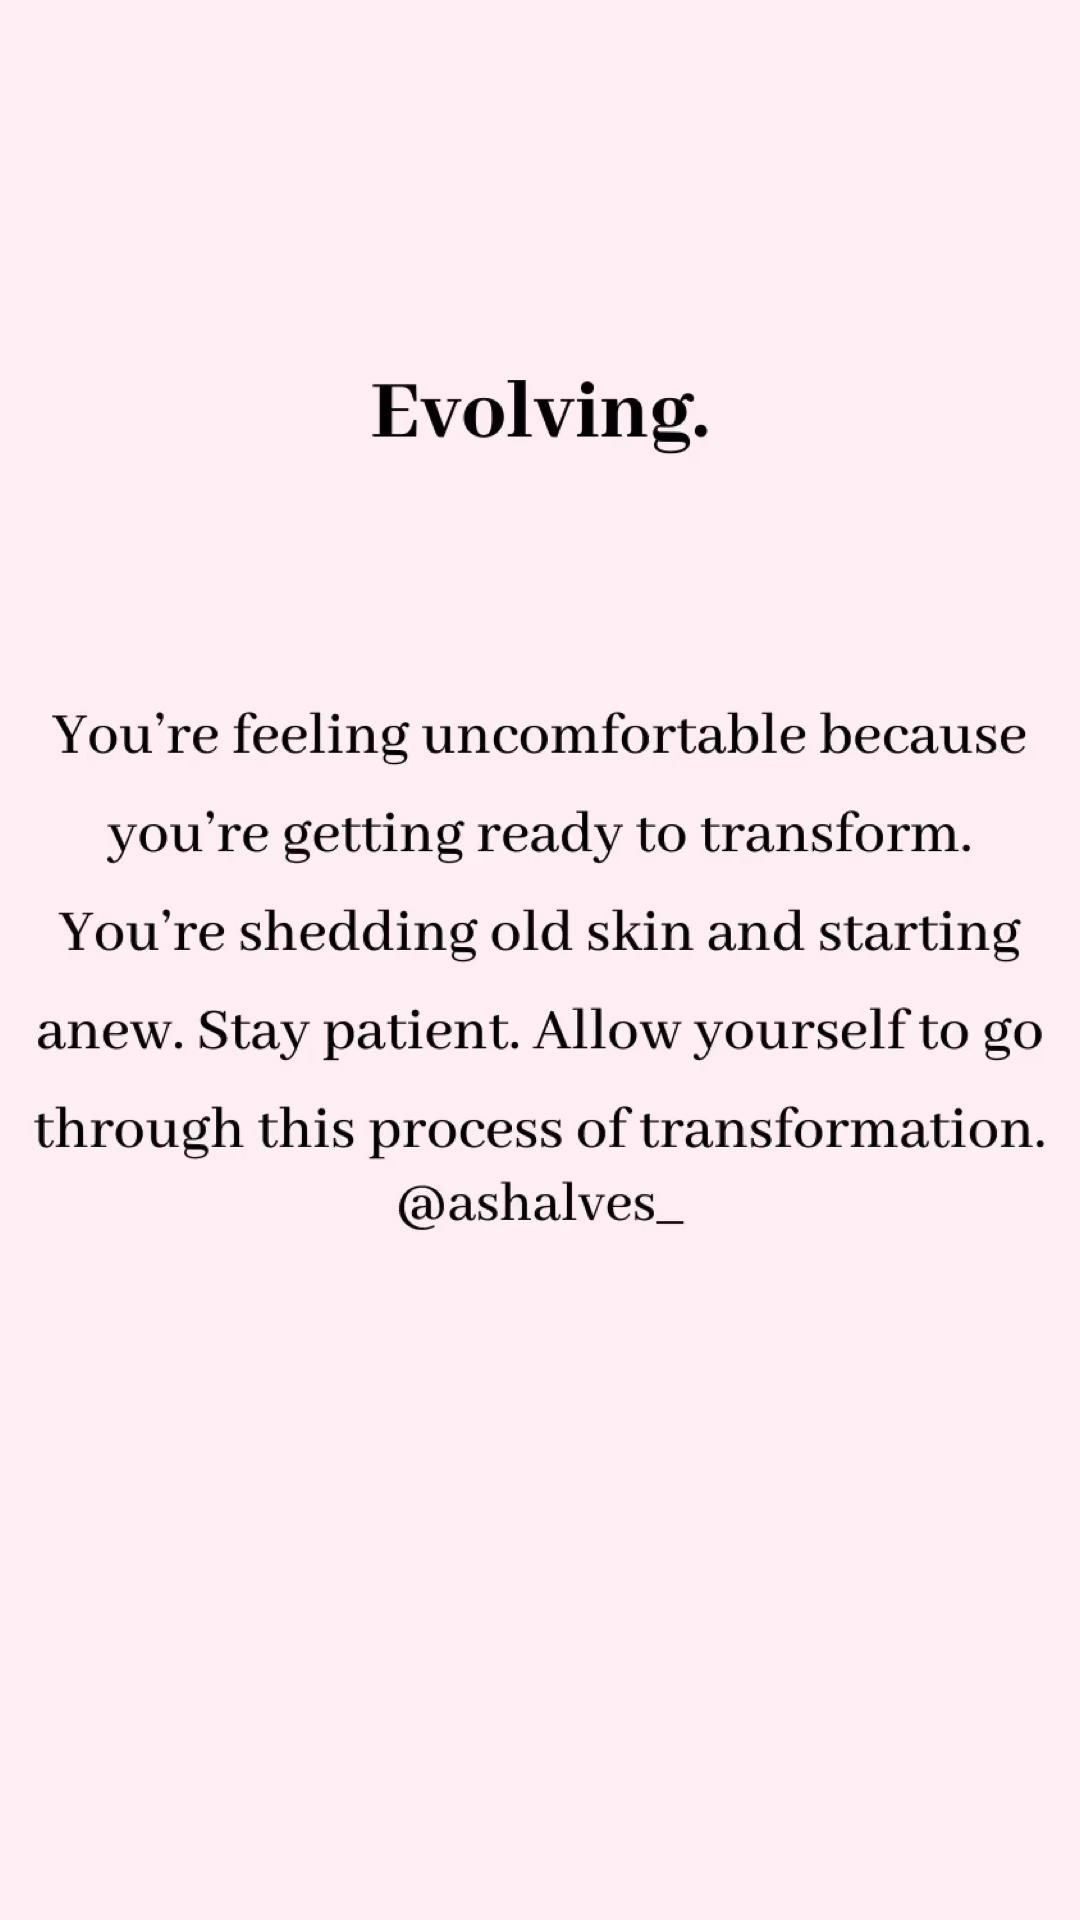 For whoever needs to hear this 🌷